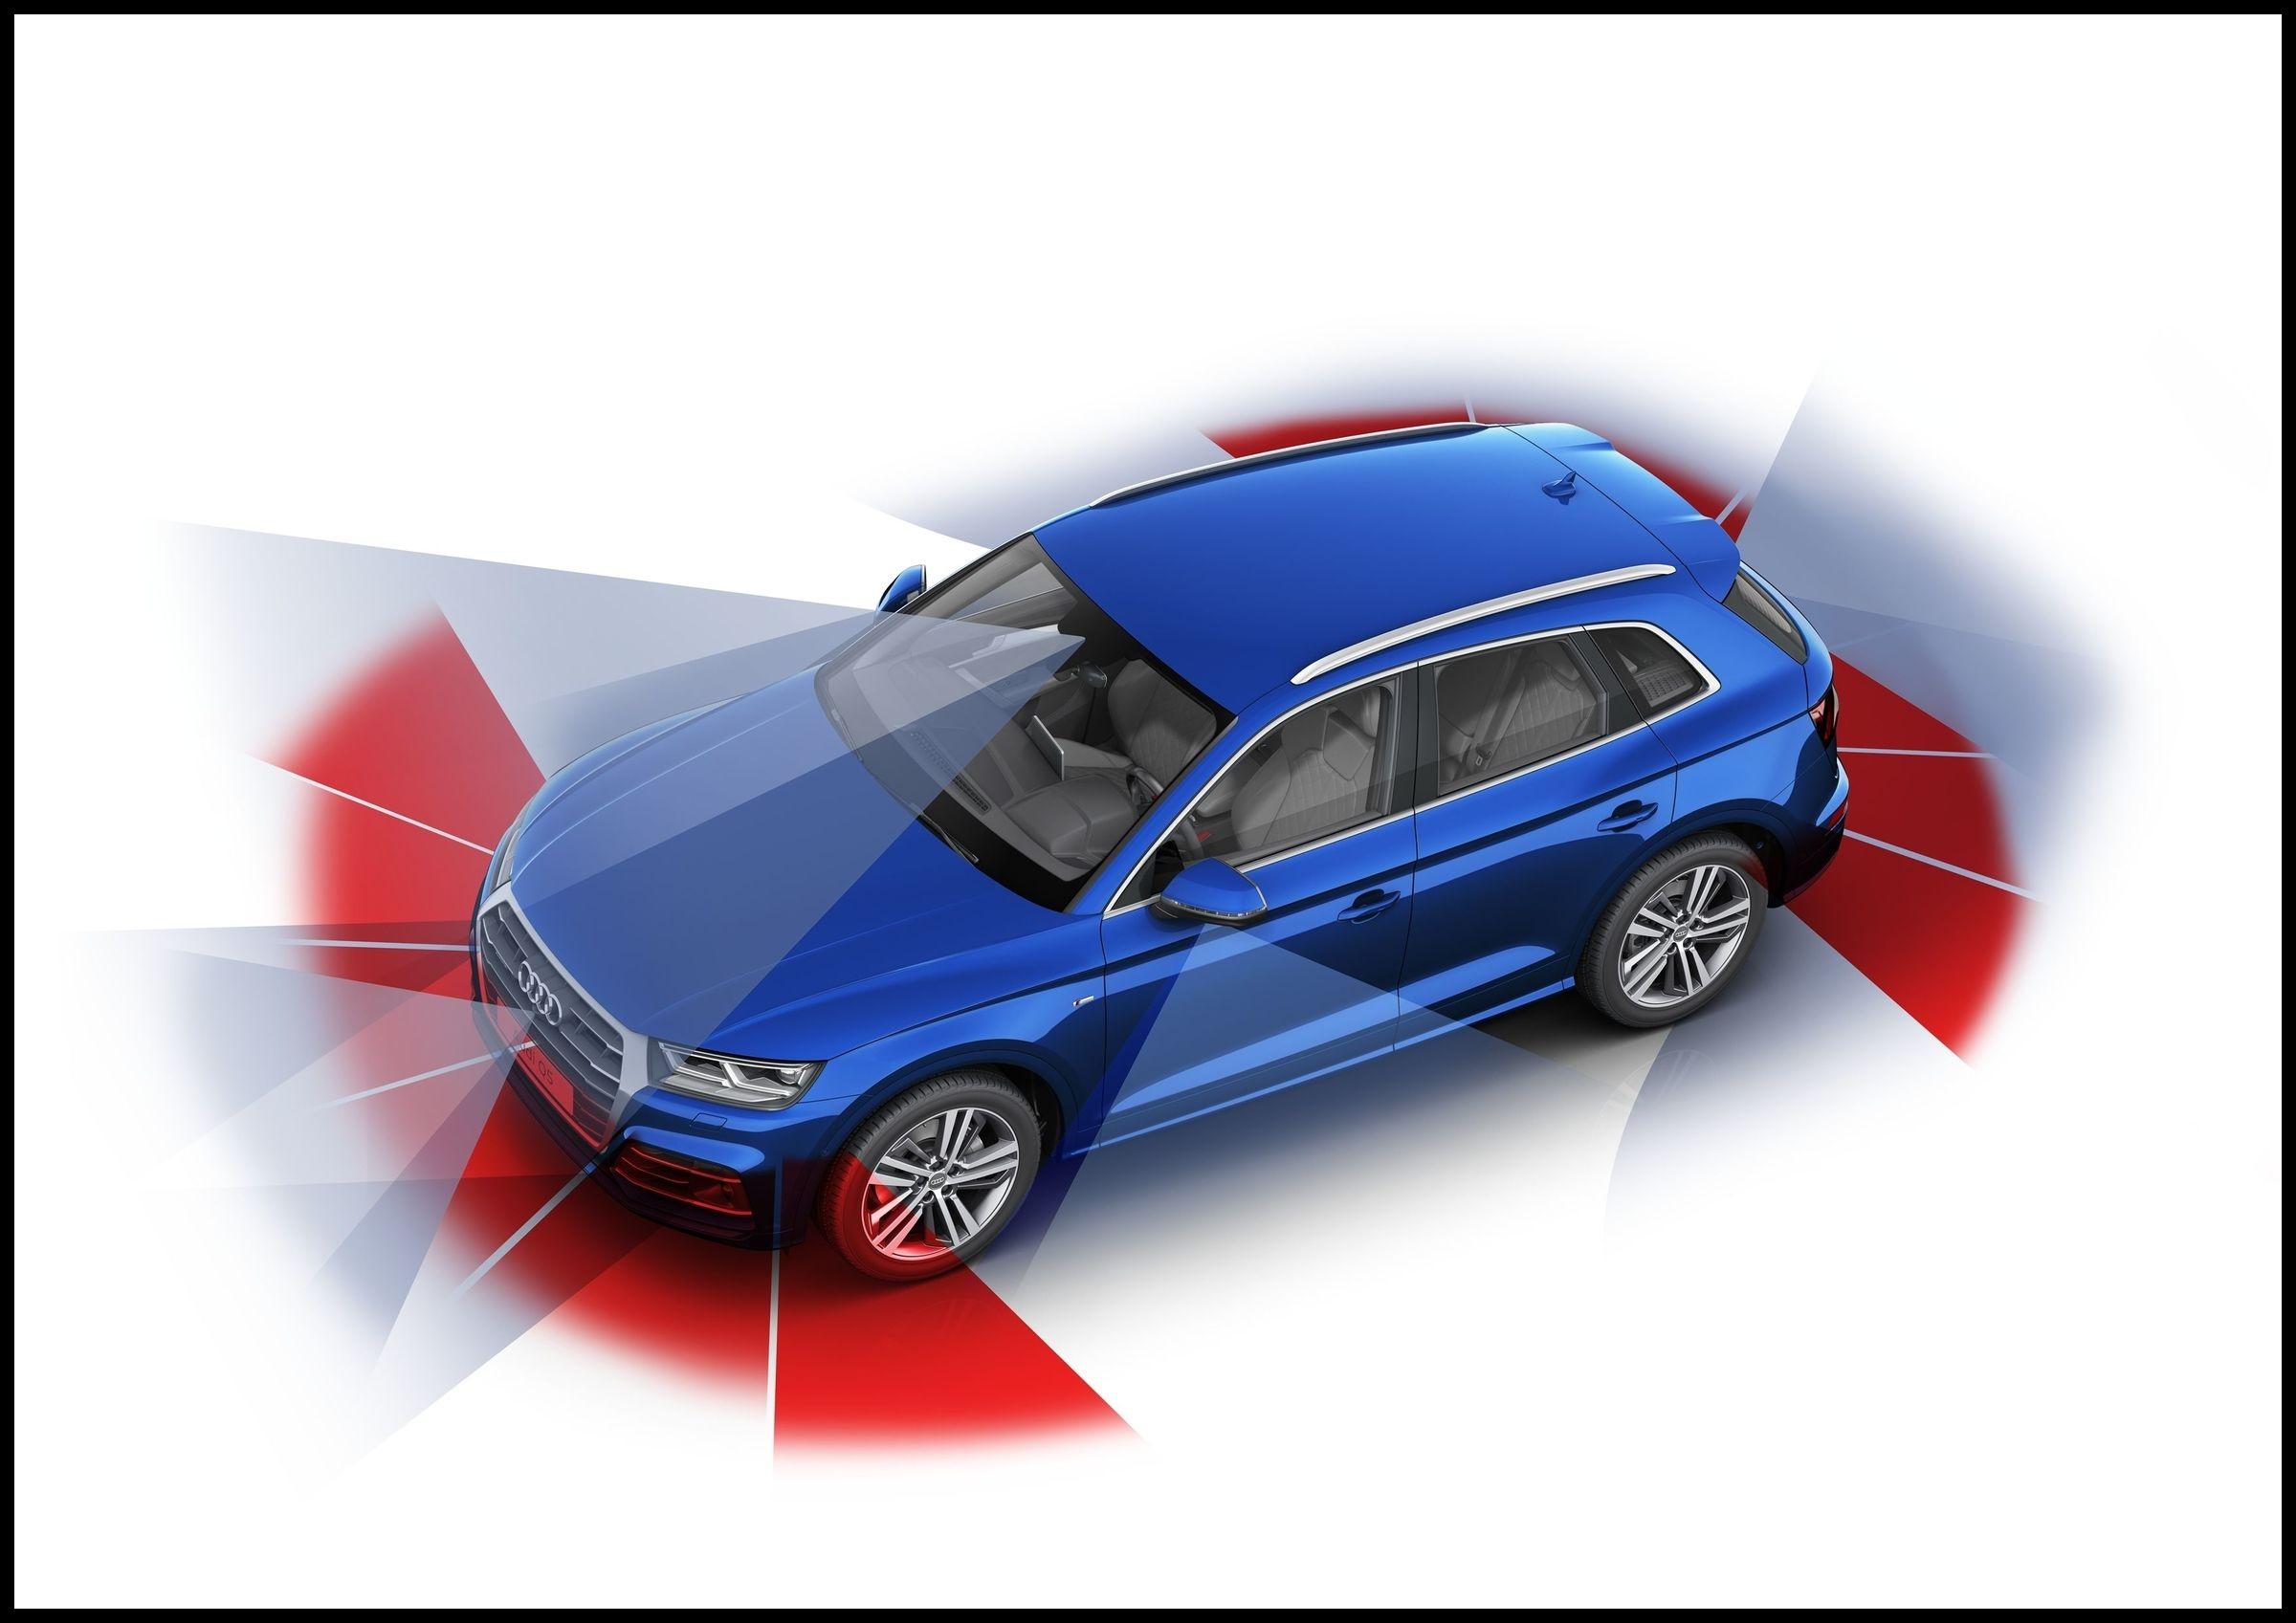 Driver assistance systems – overview of sensors